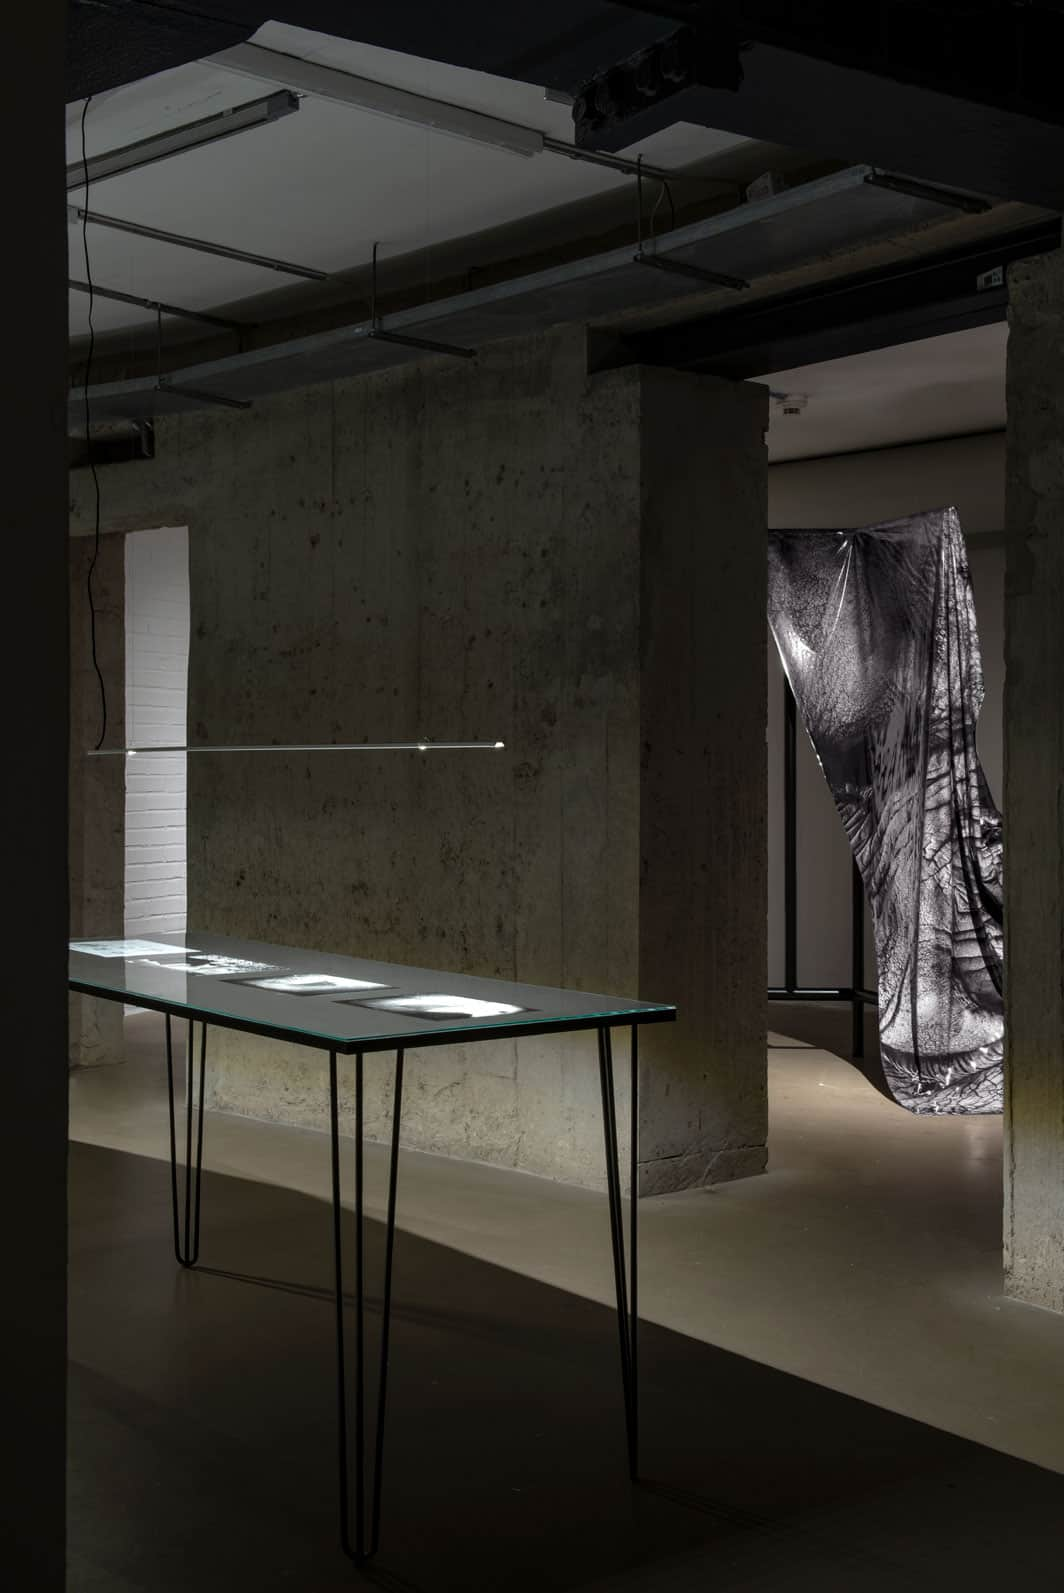 On the left: Netta Laufer, 35 cm, 2017–2020, photographs, exhibition copies. In the background: Tom Swoboda, Animal Space – The skin of an elephant, metal object, photo print of an elephant skin. Photo by Małgorzata Kujda, © Wrocław Contemporary Museum, 2020.